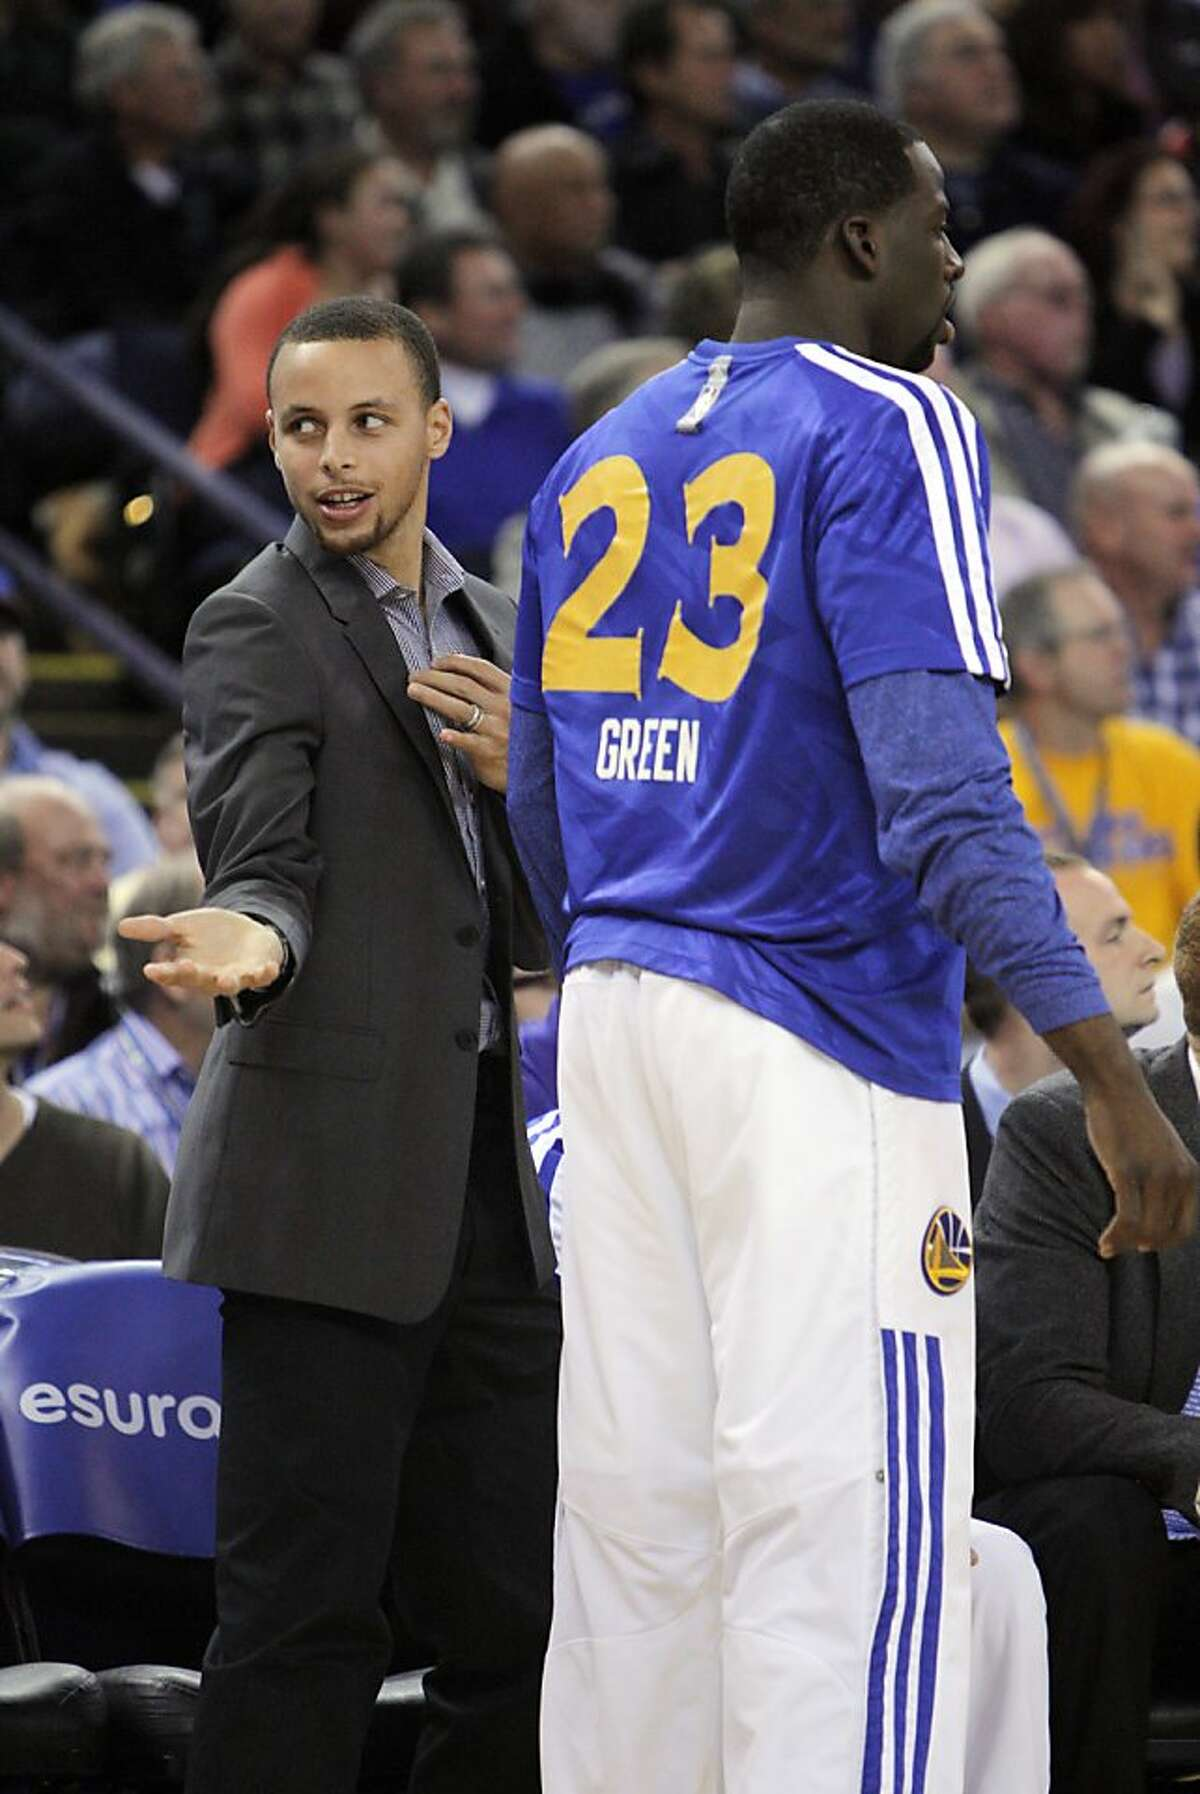 Stephen Curry gestures on the bench after Klay Thompson hit a three-point shot in the first half. The Golden State Warriors played the Memphis Grizzlies at Oracle Arena in Oakland, Calif., on Wednesday, November 20, 2013